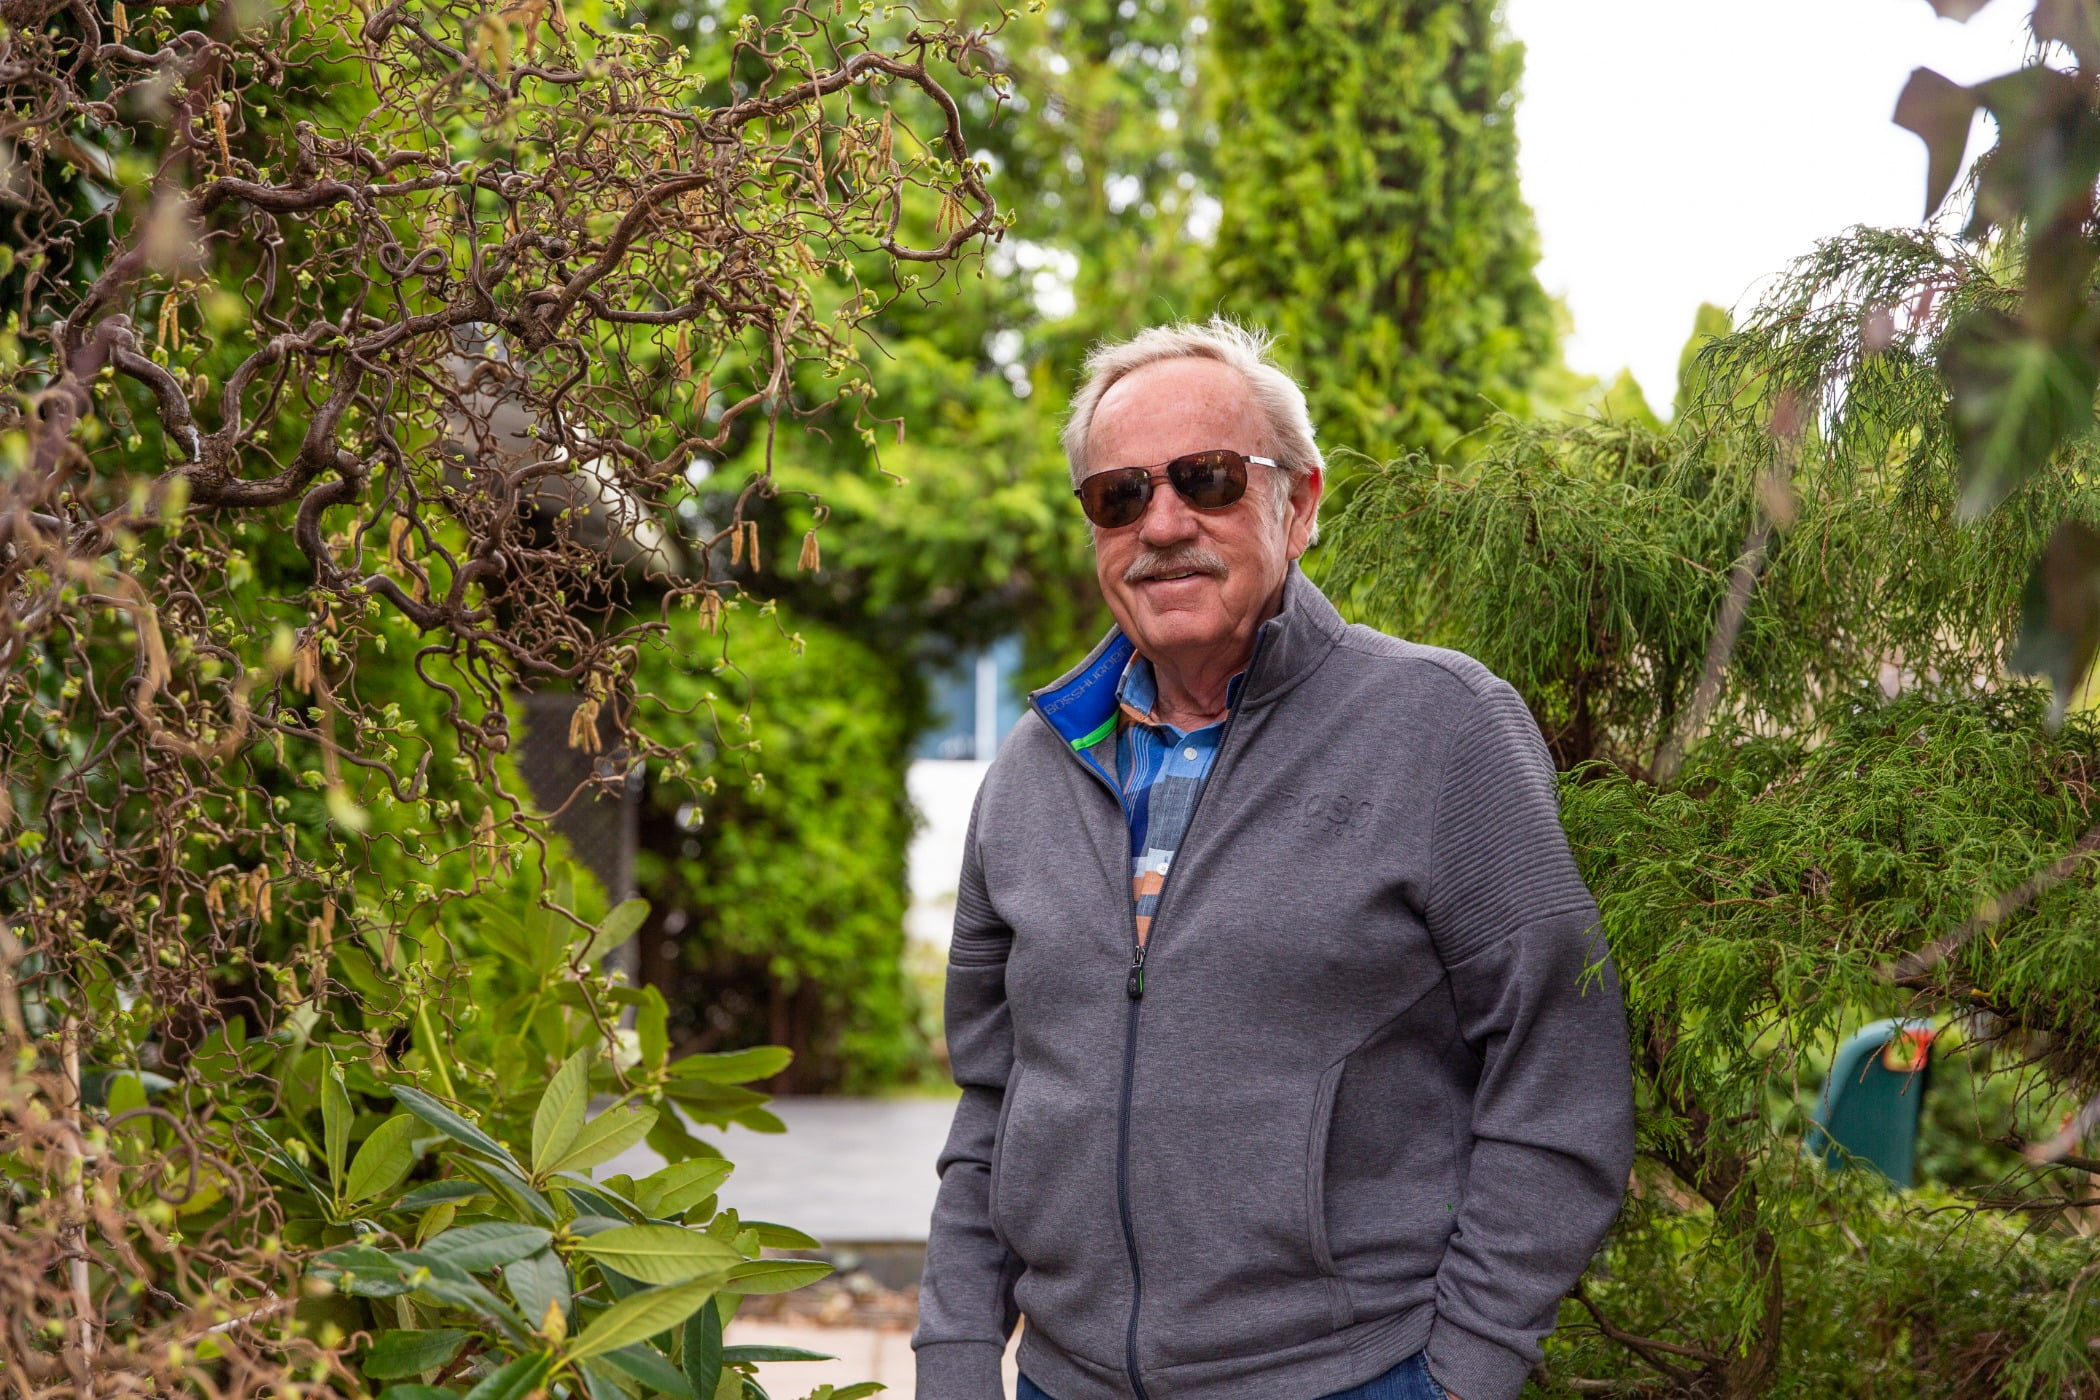 People in nature, Plant community, Botany, Leaf, Sky, Sunglasses, Biome, Grass, Tree